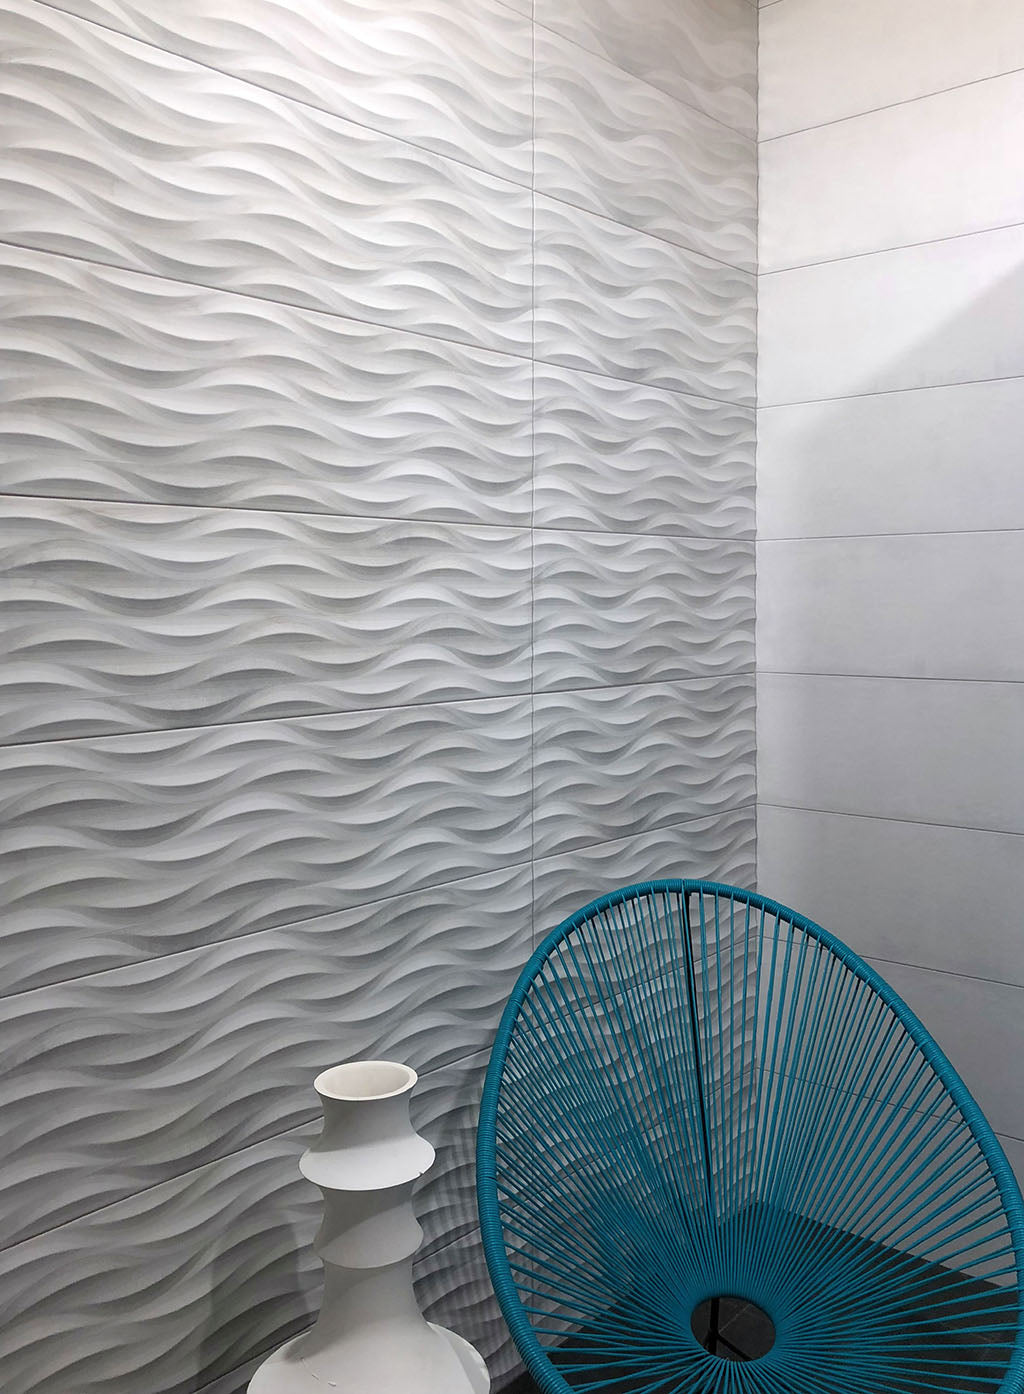 Tango Grey Wave Tile Adds a Modern Textural Detail to a Coastal Inspired Statement Wall